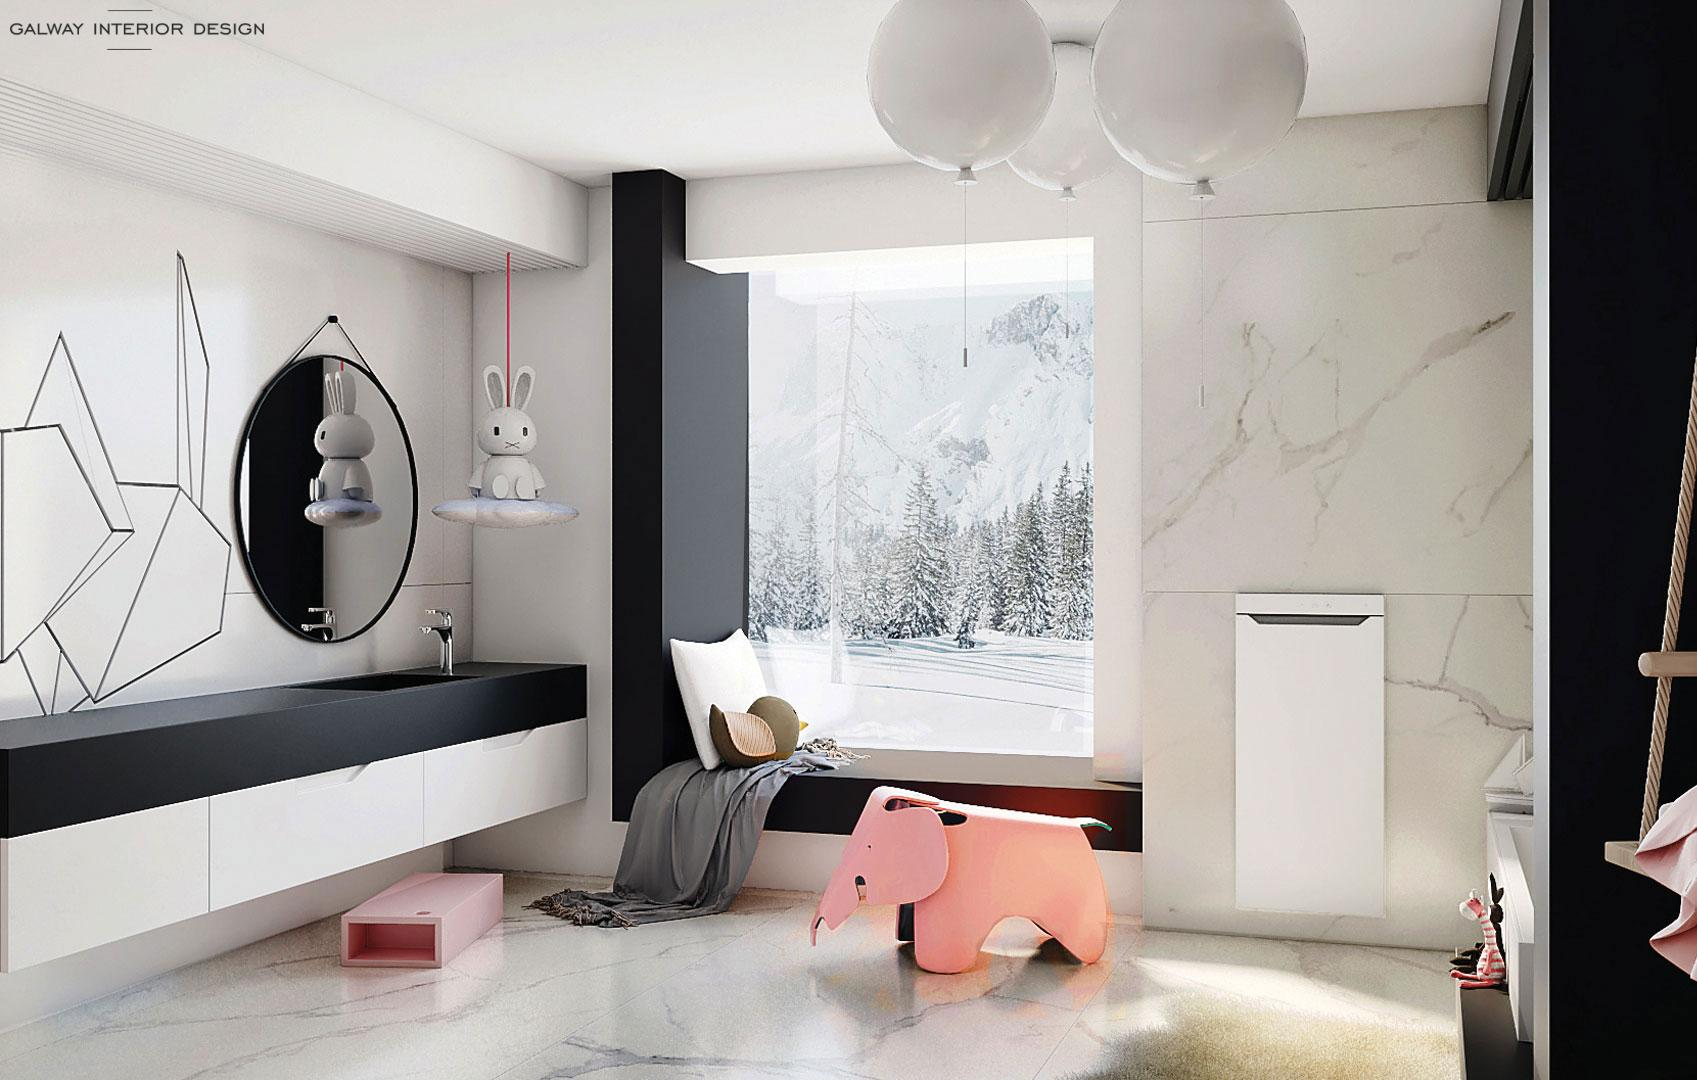 Galway Interior Design - Modern Kids Bathroom